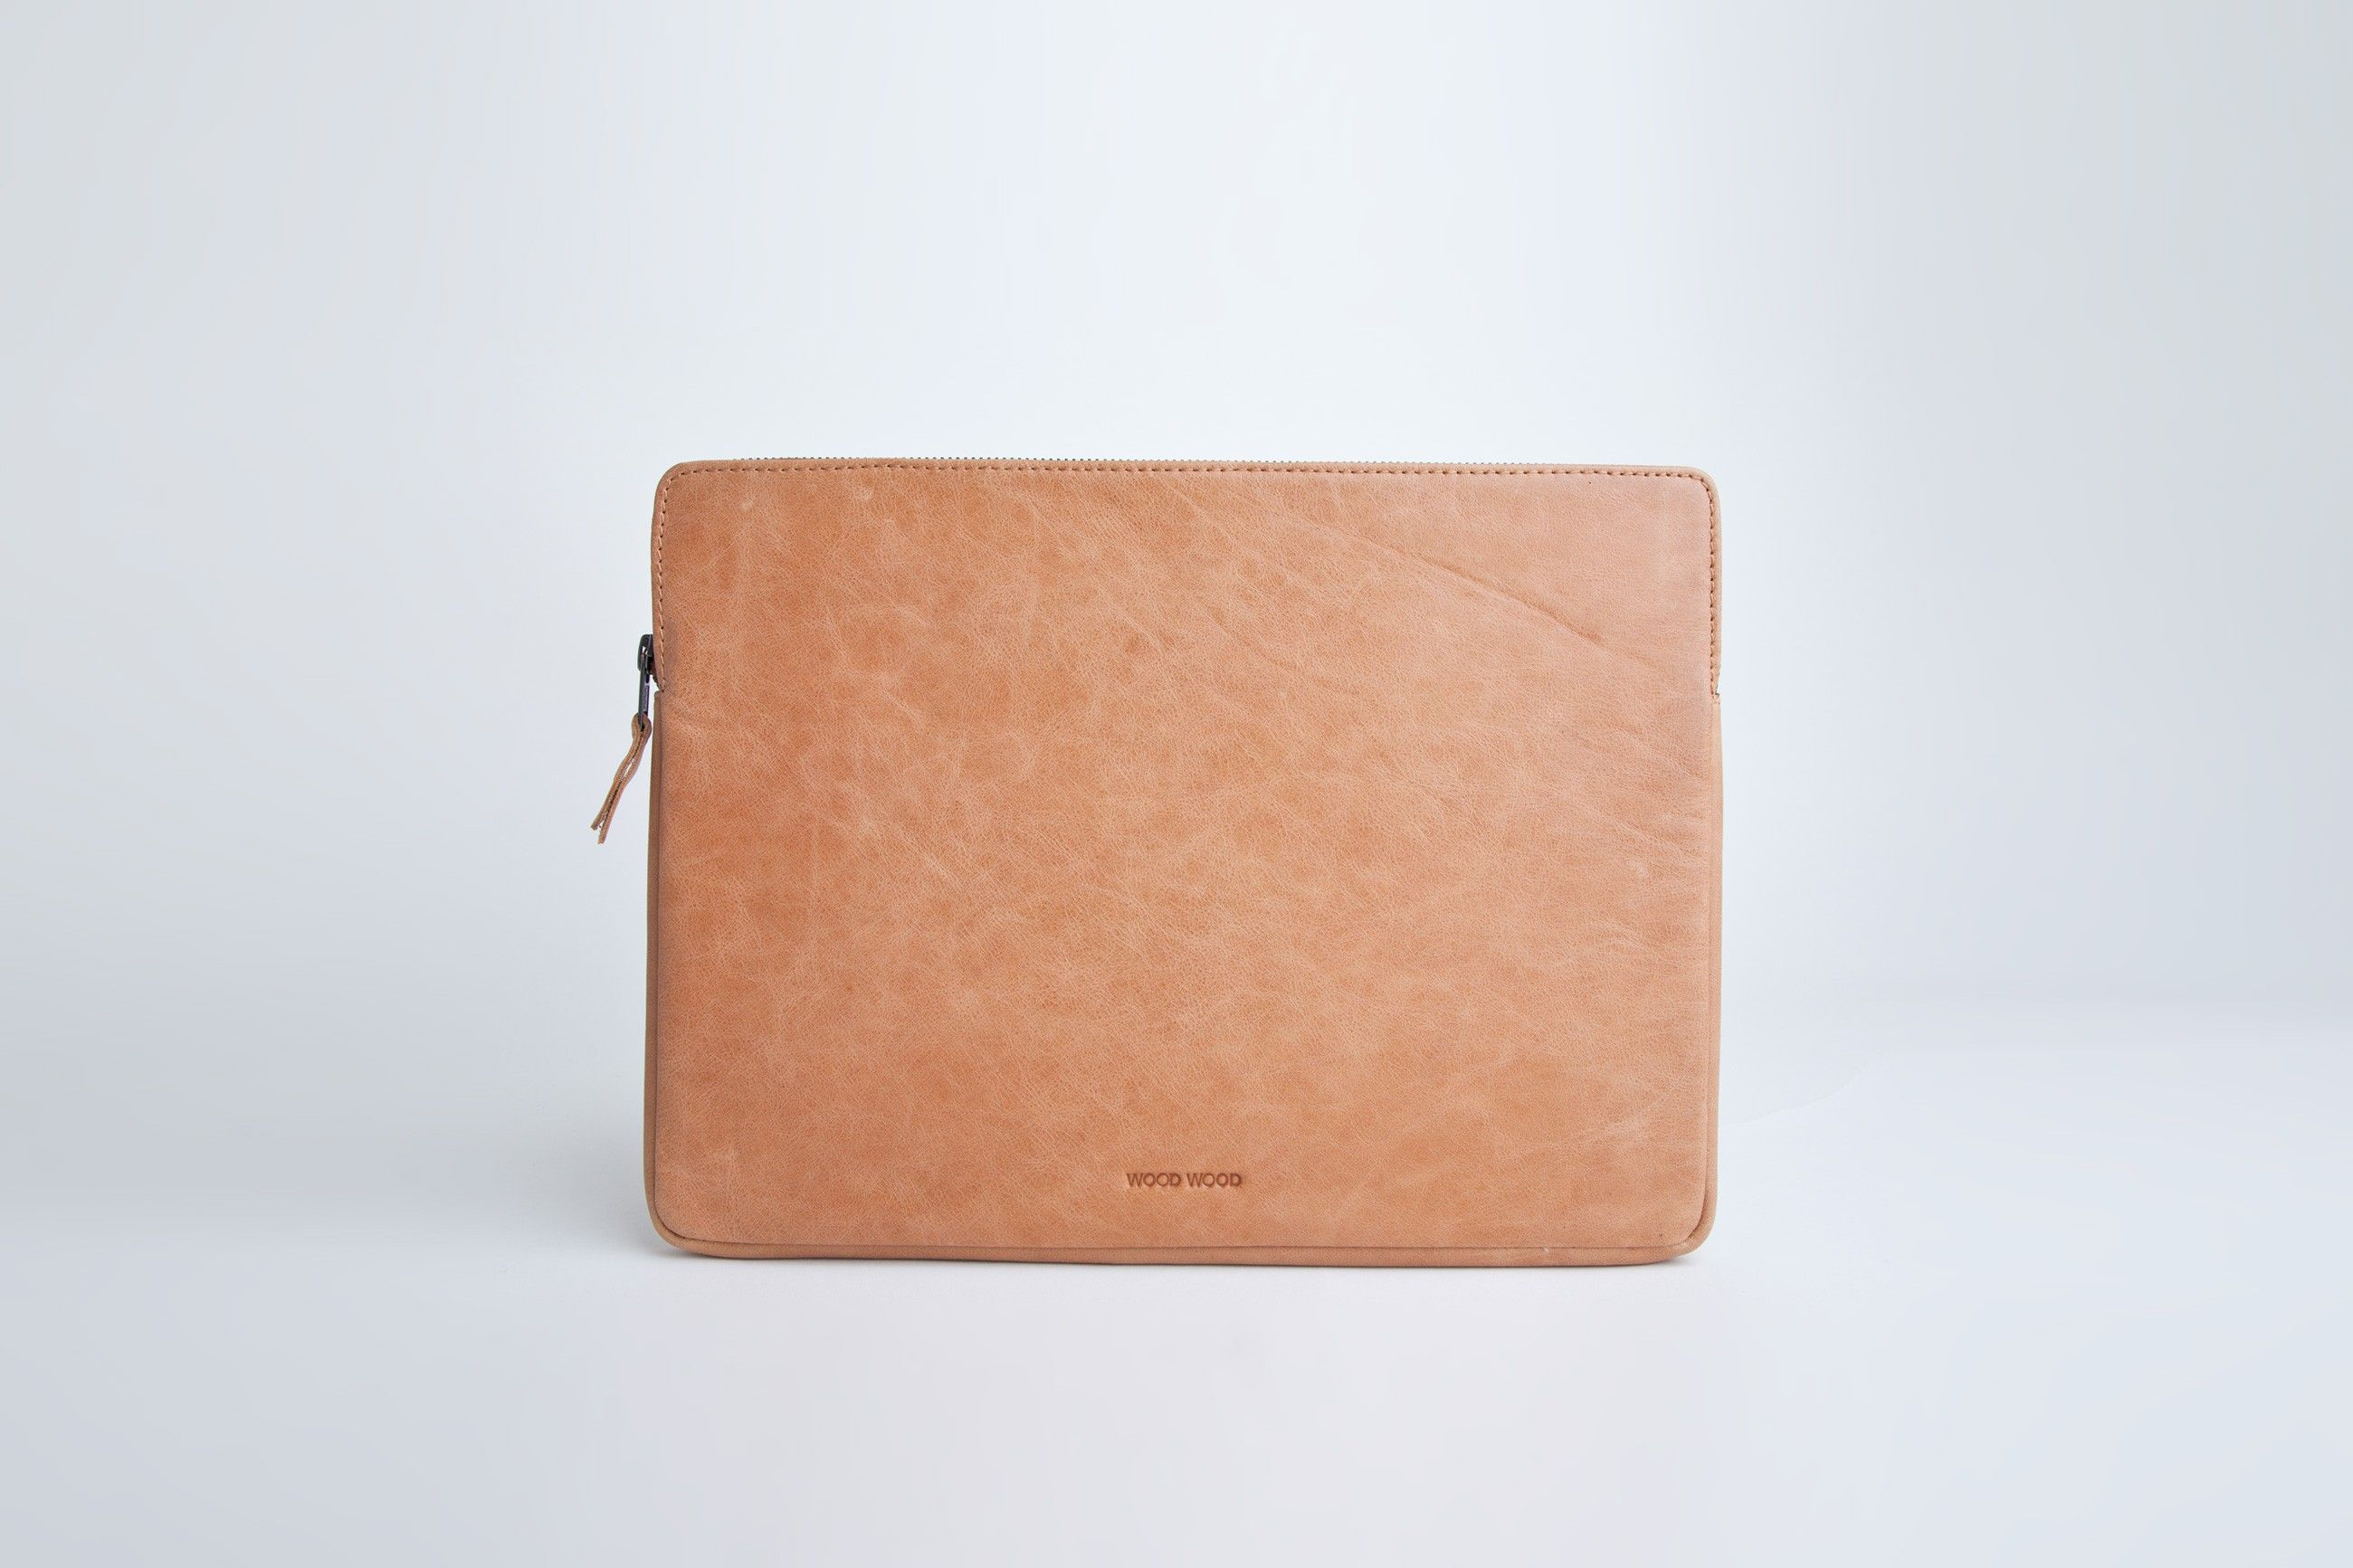 VooStore – Wood Wood Laptop Bag Tan